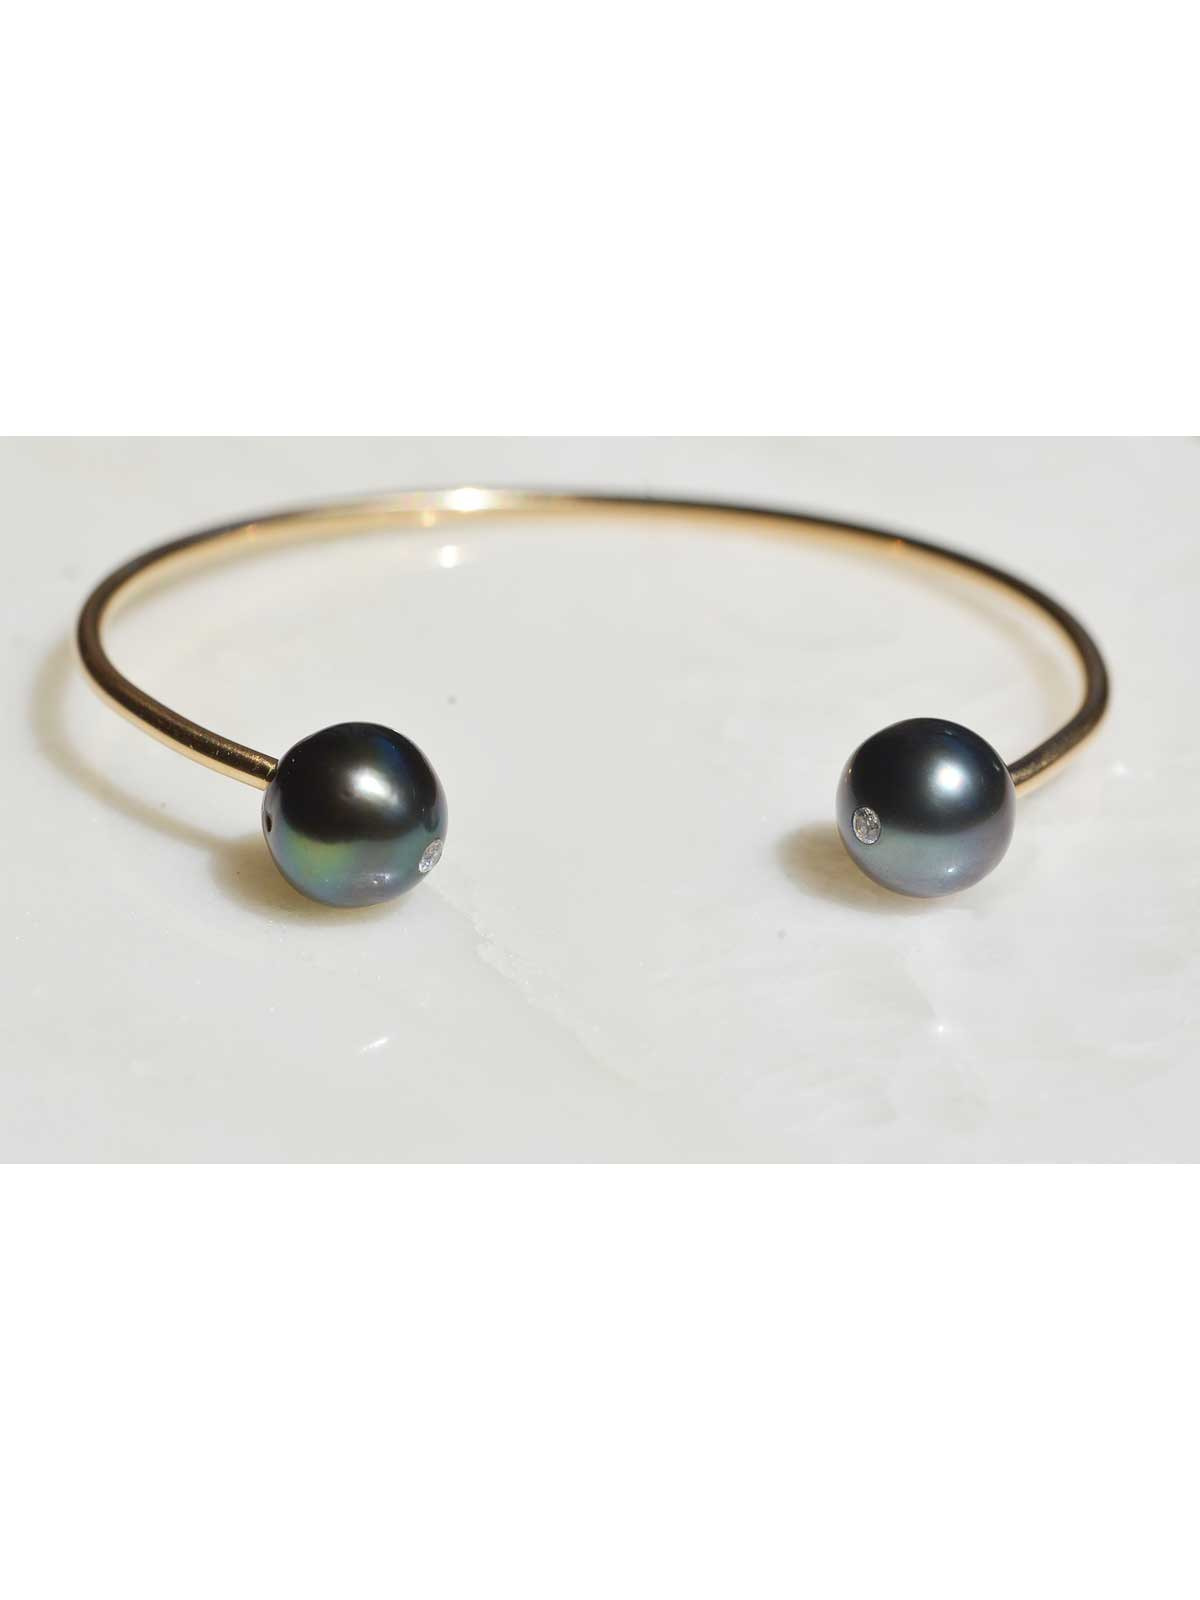 ETERNITY Cuff Bracelet Tahitian Pearl Diamond 14K yellow gold